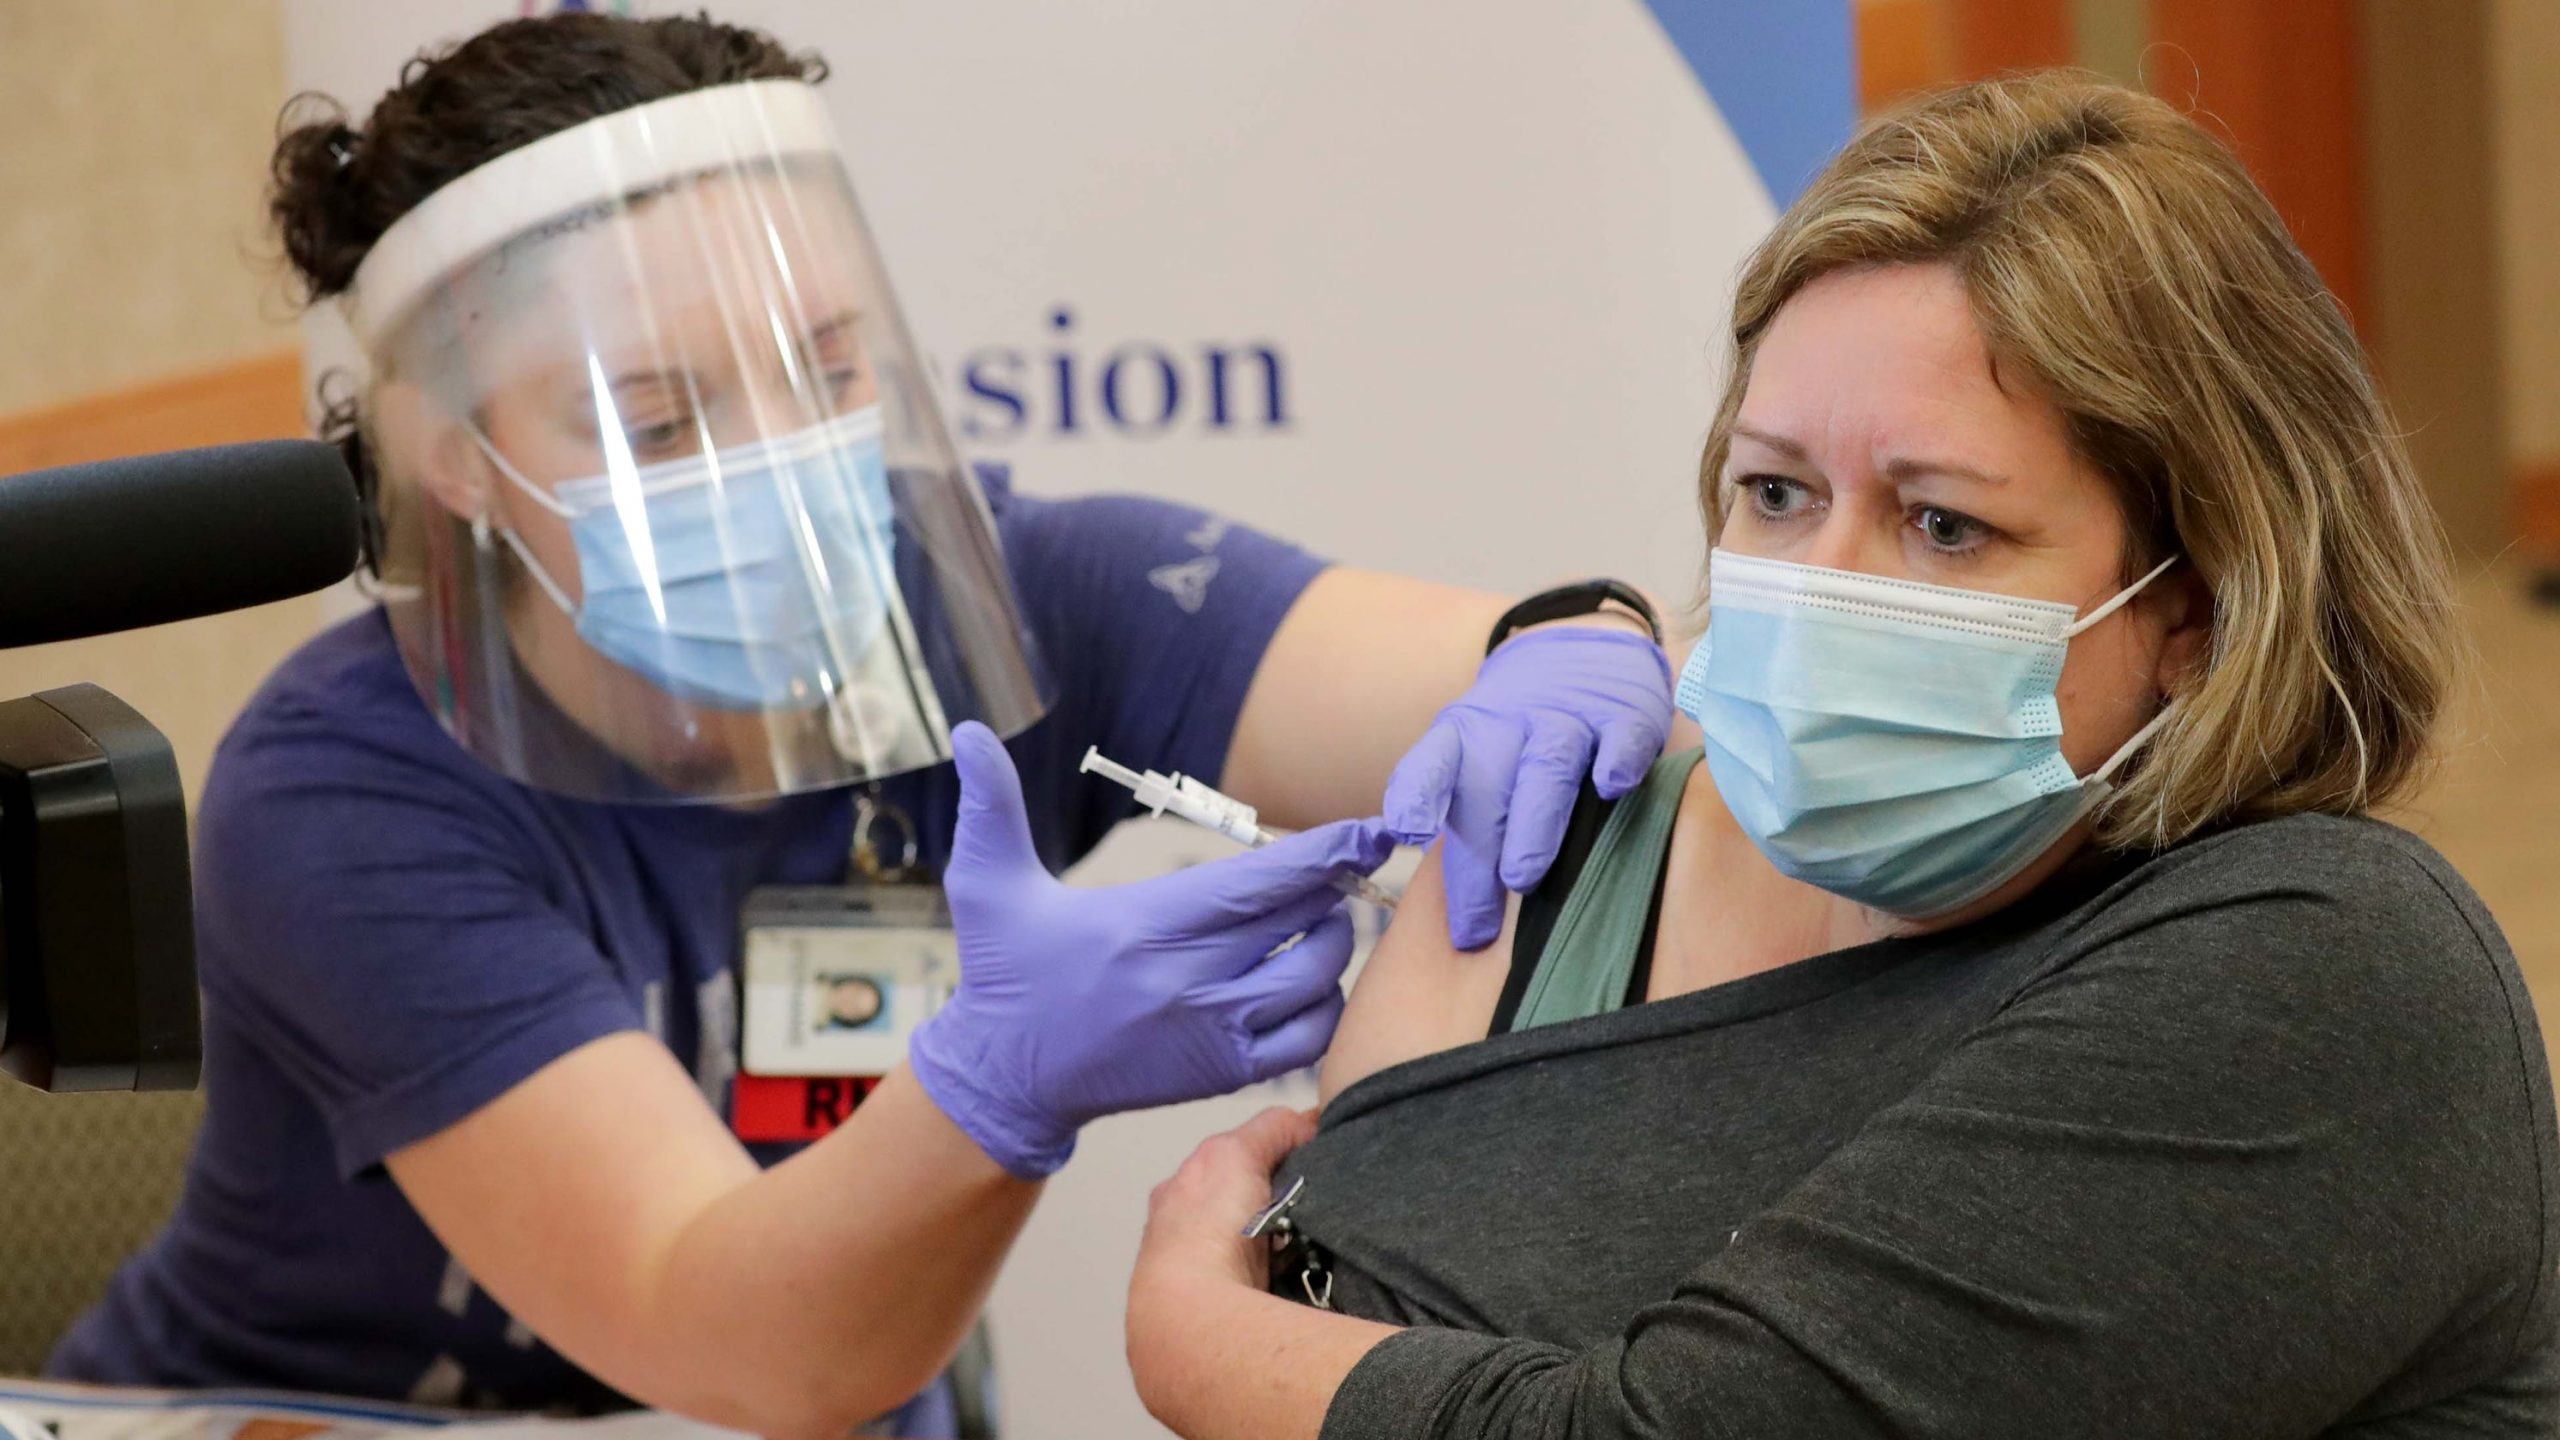 How is COVID-19 vaccine distribution going? The scene in Wisconsin is 'bizarre, disorganized' 1